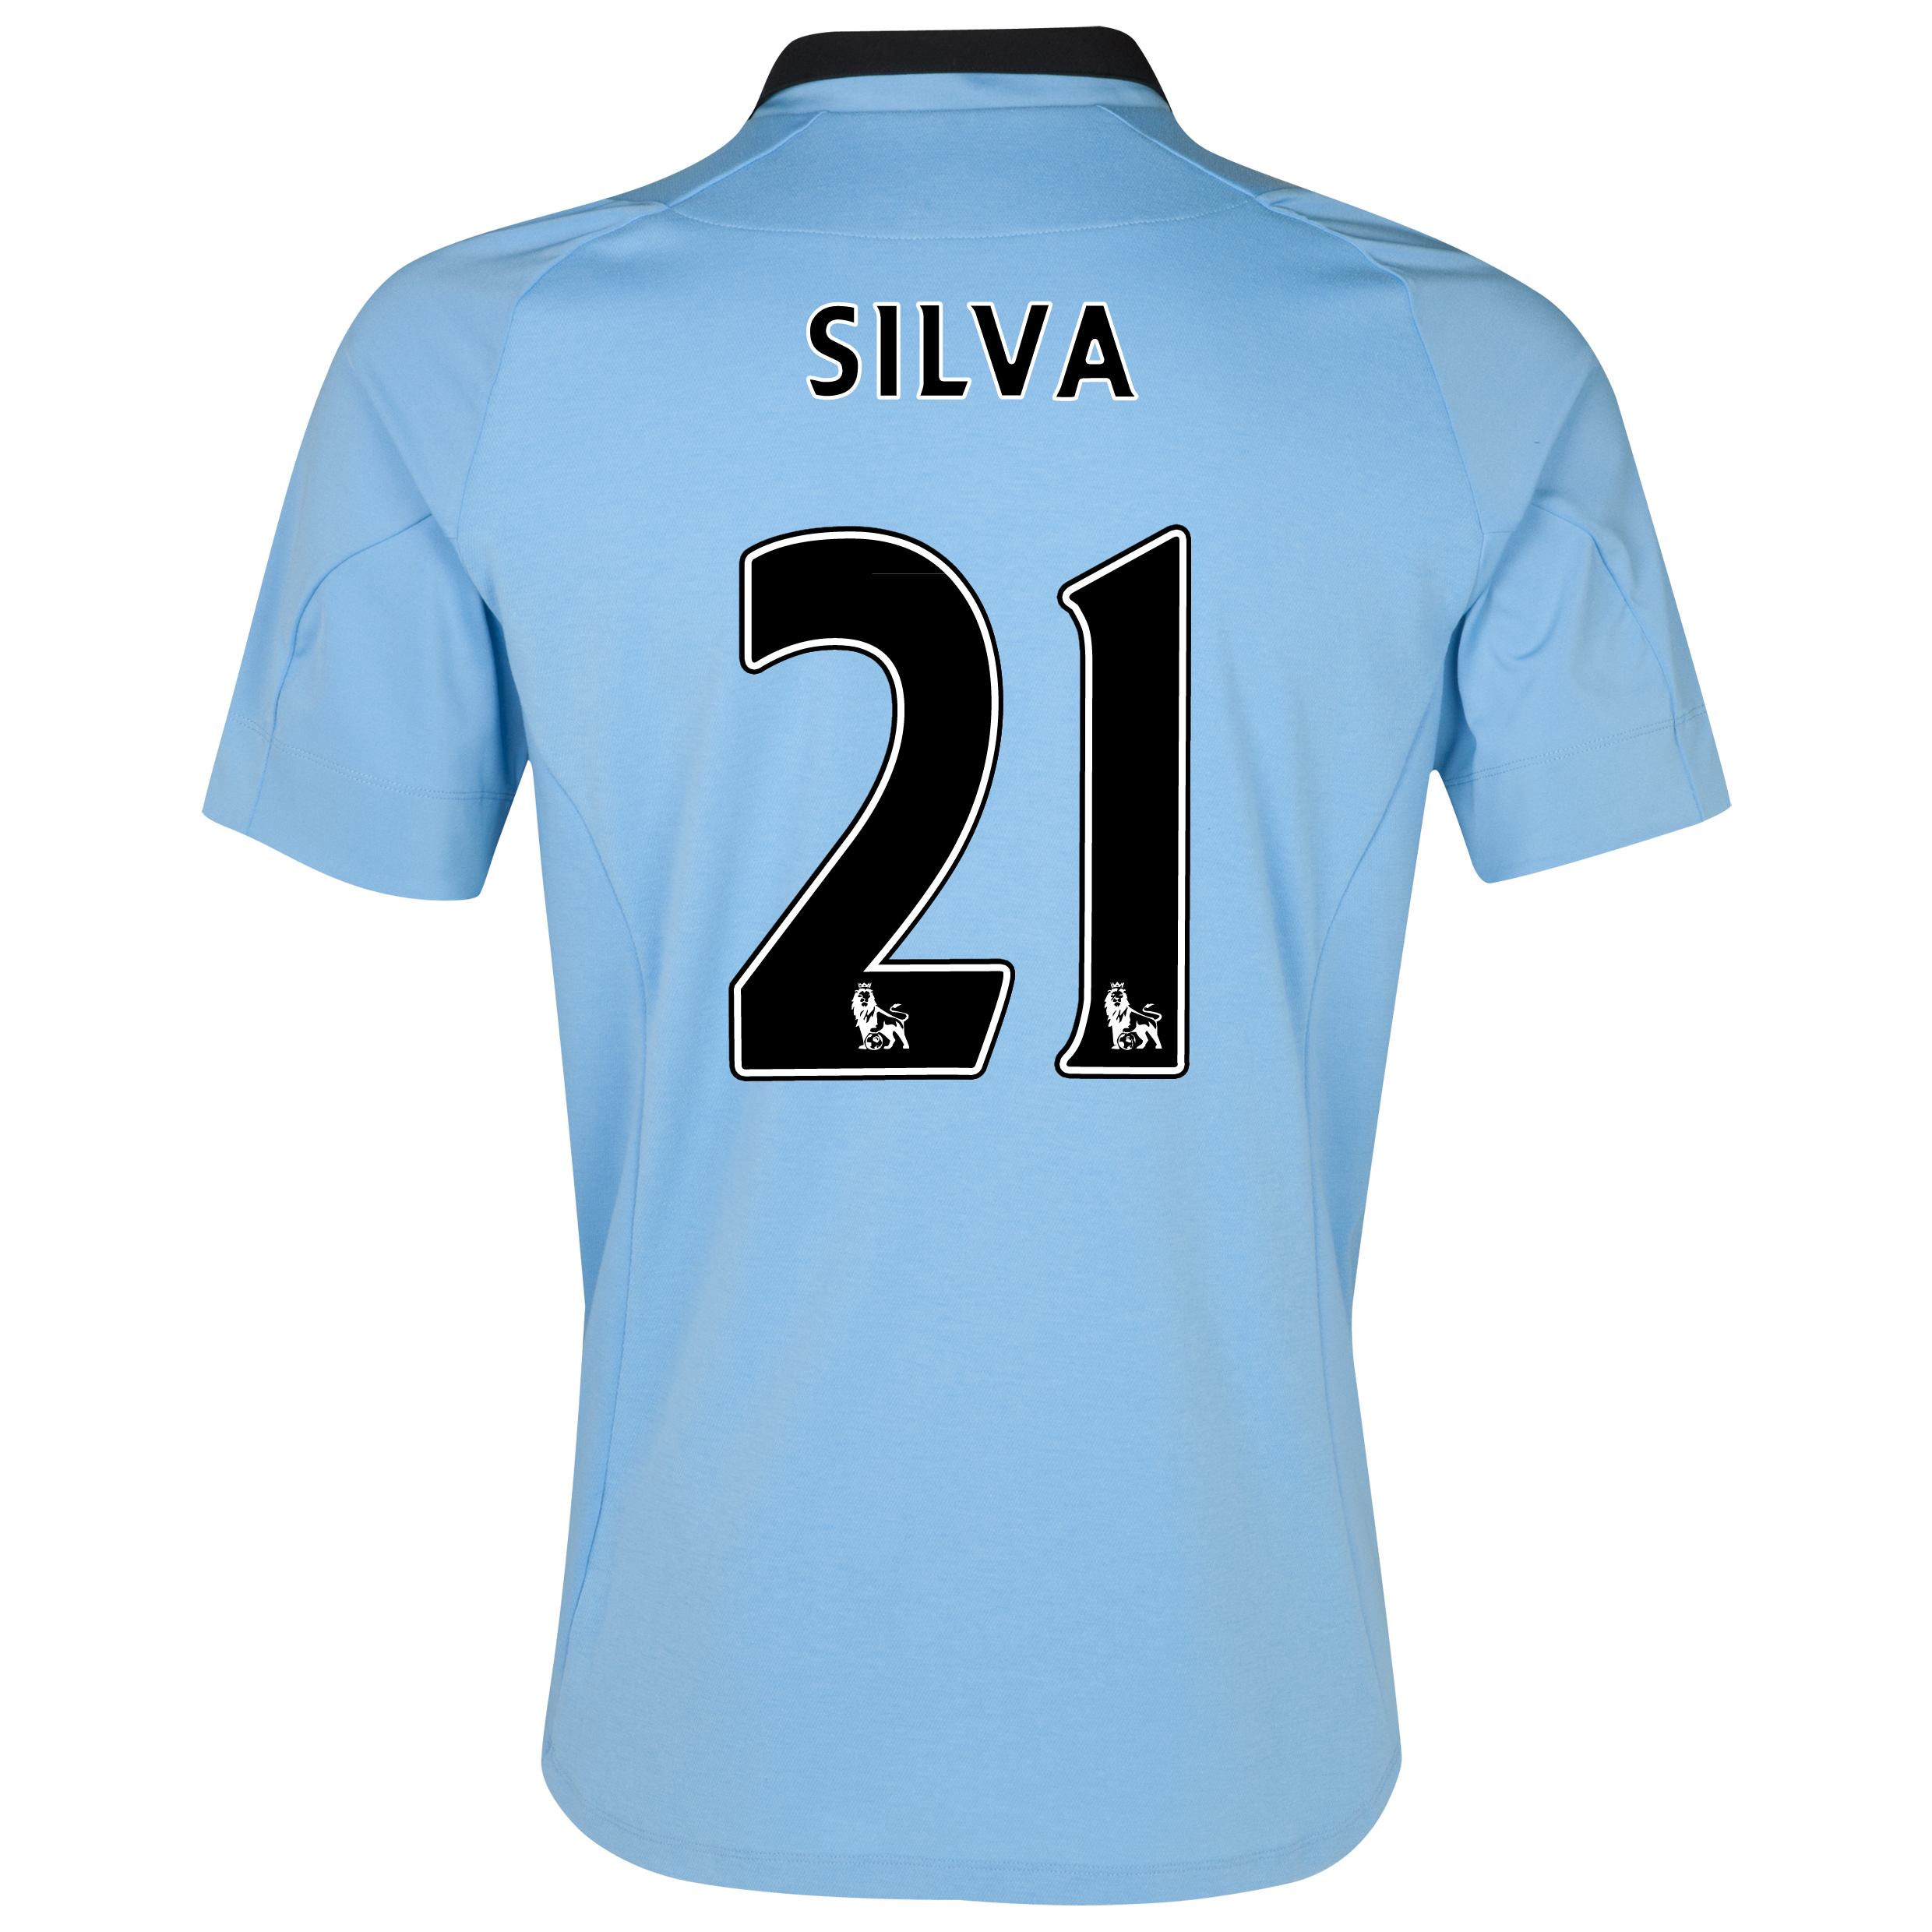 Manchester City Home Shirt 2012/13 with Silva 21 printing